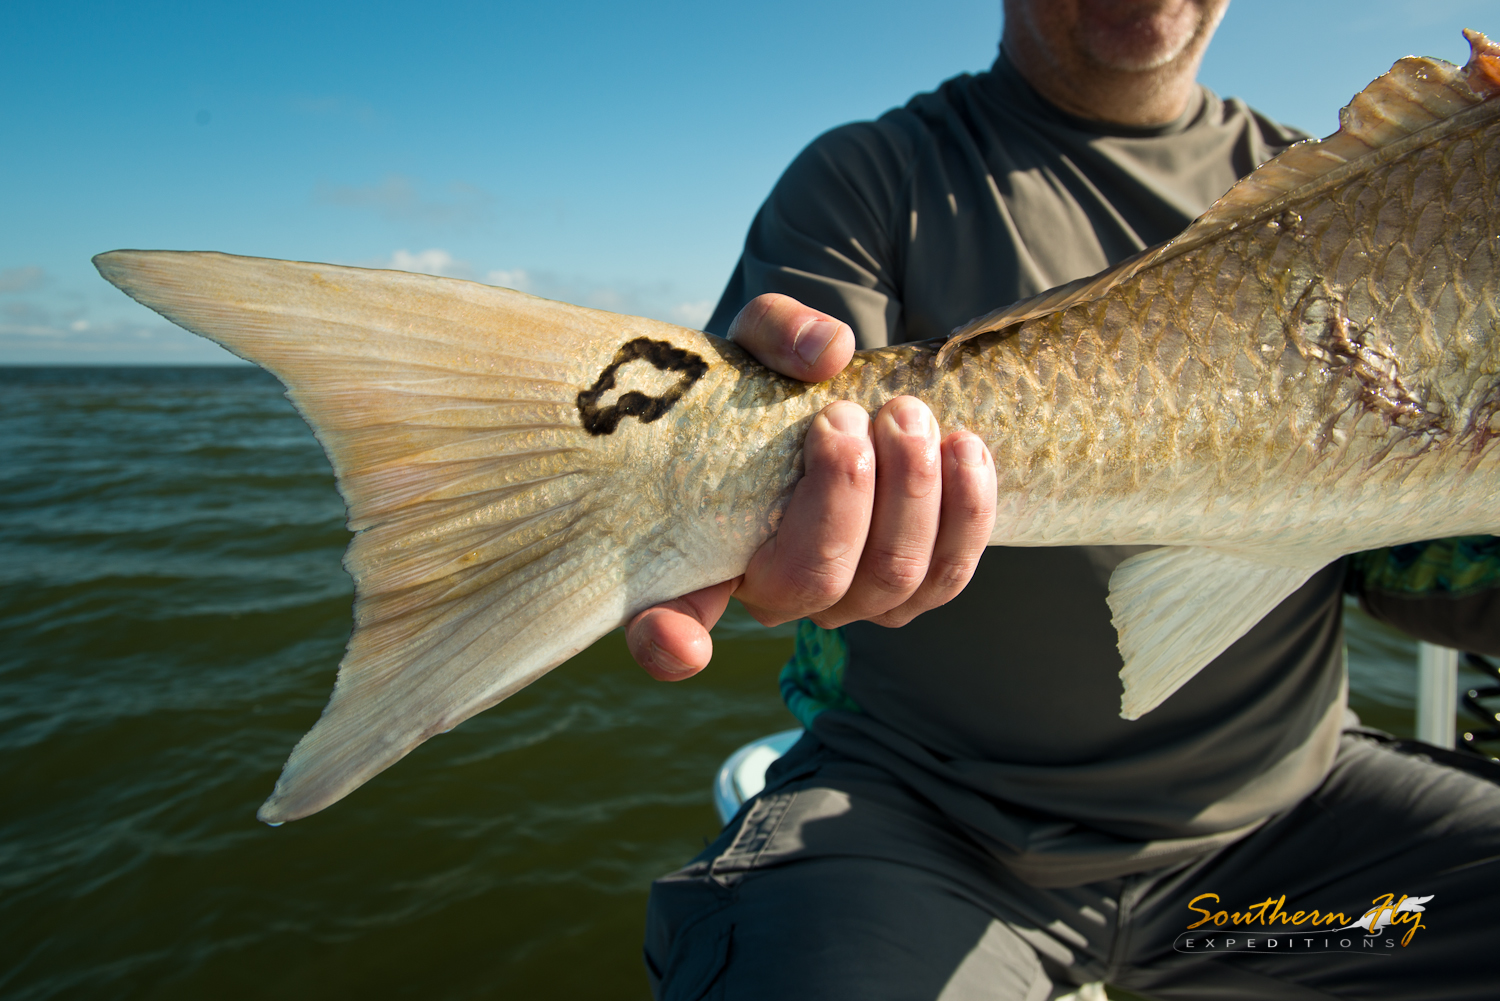 Fishing for redfish with Southern Fly Expeditions and captain brandon keck in New Orleans Louisiana